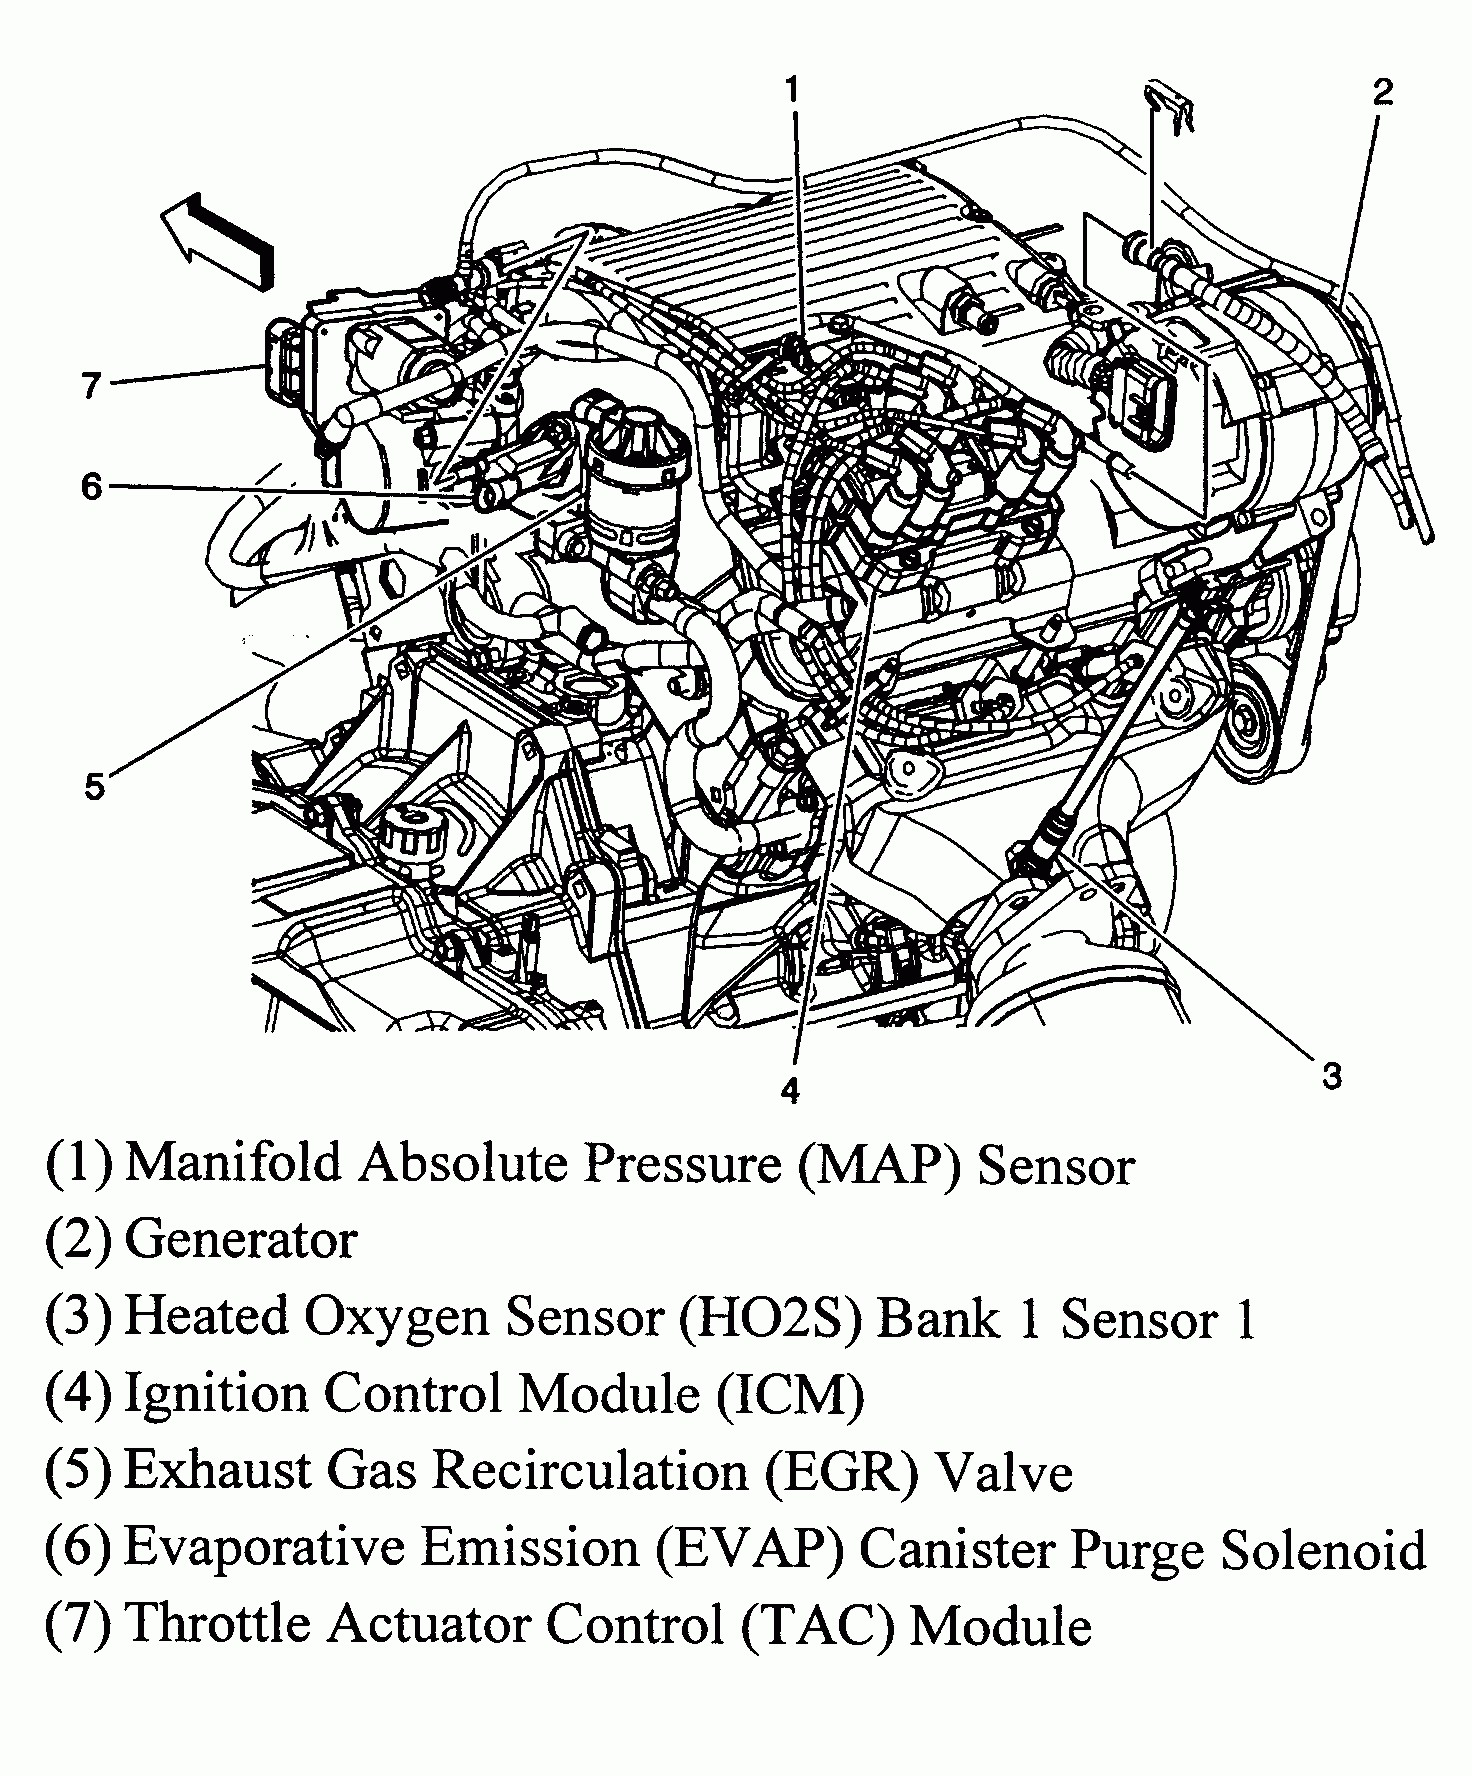 Pontiac Montana Fuse Box Location Wiring Library 2006 G6 Located Solstice Chevy Hhr Engine Compartment Diagram